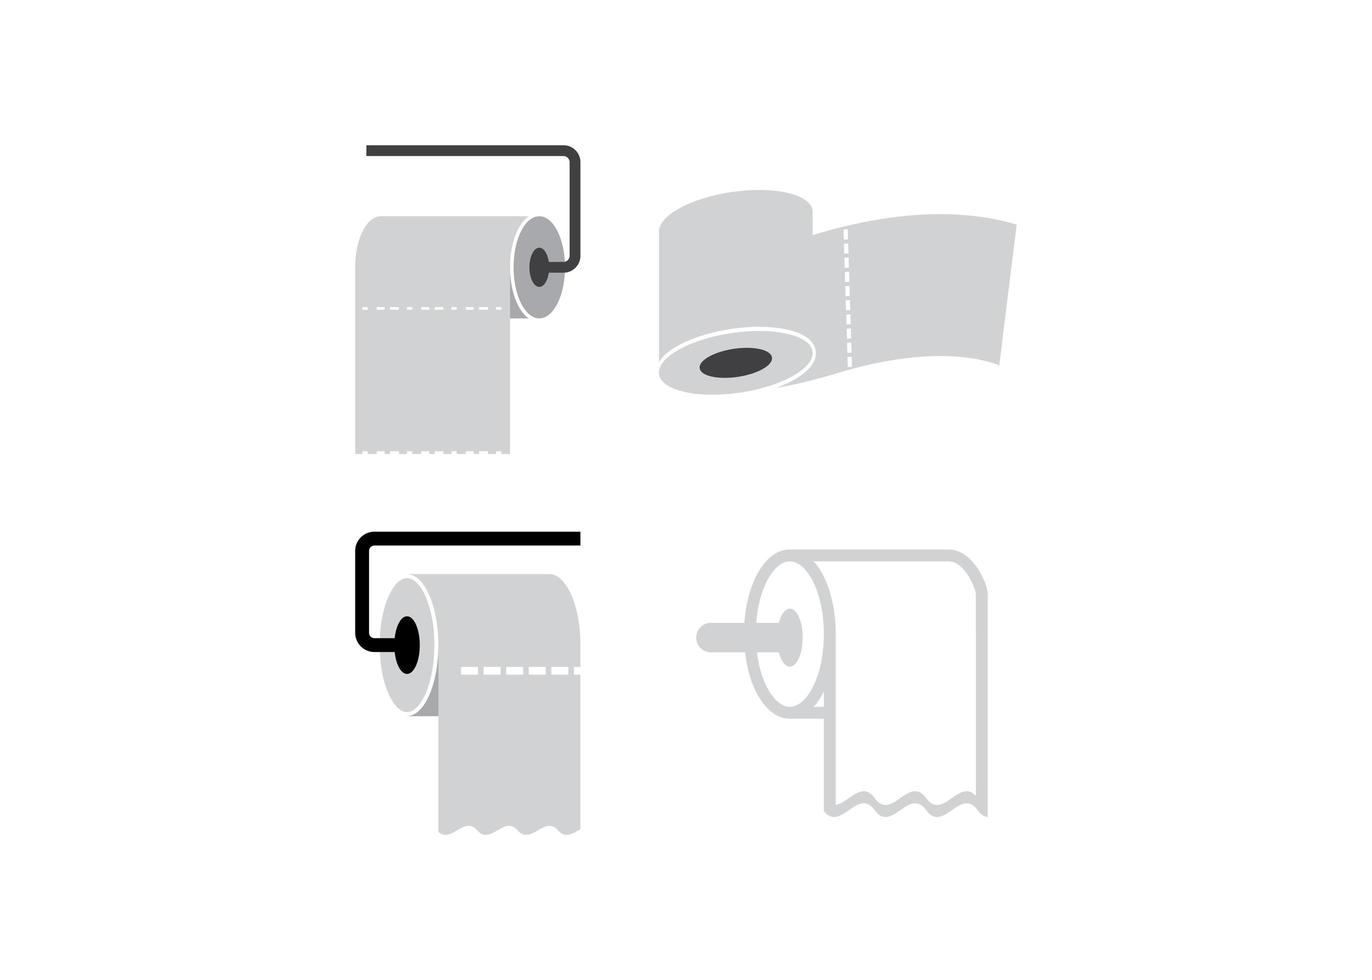 Toilet paper icon design template vector isolated